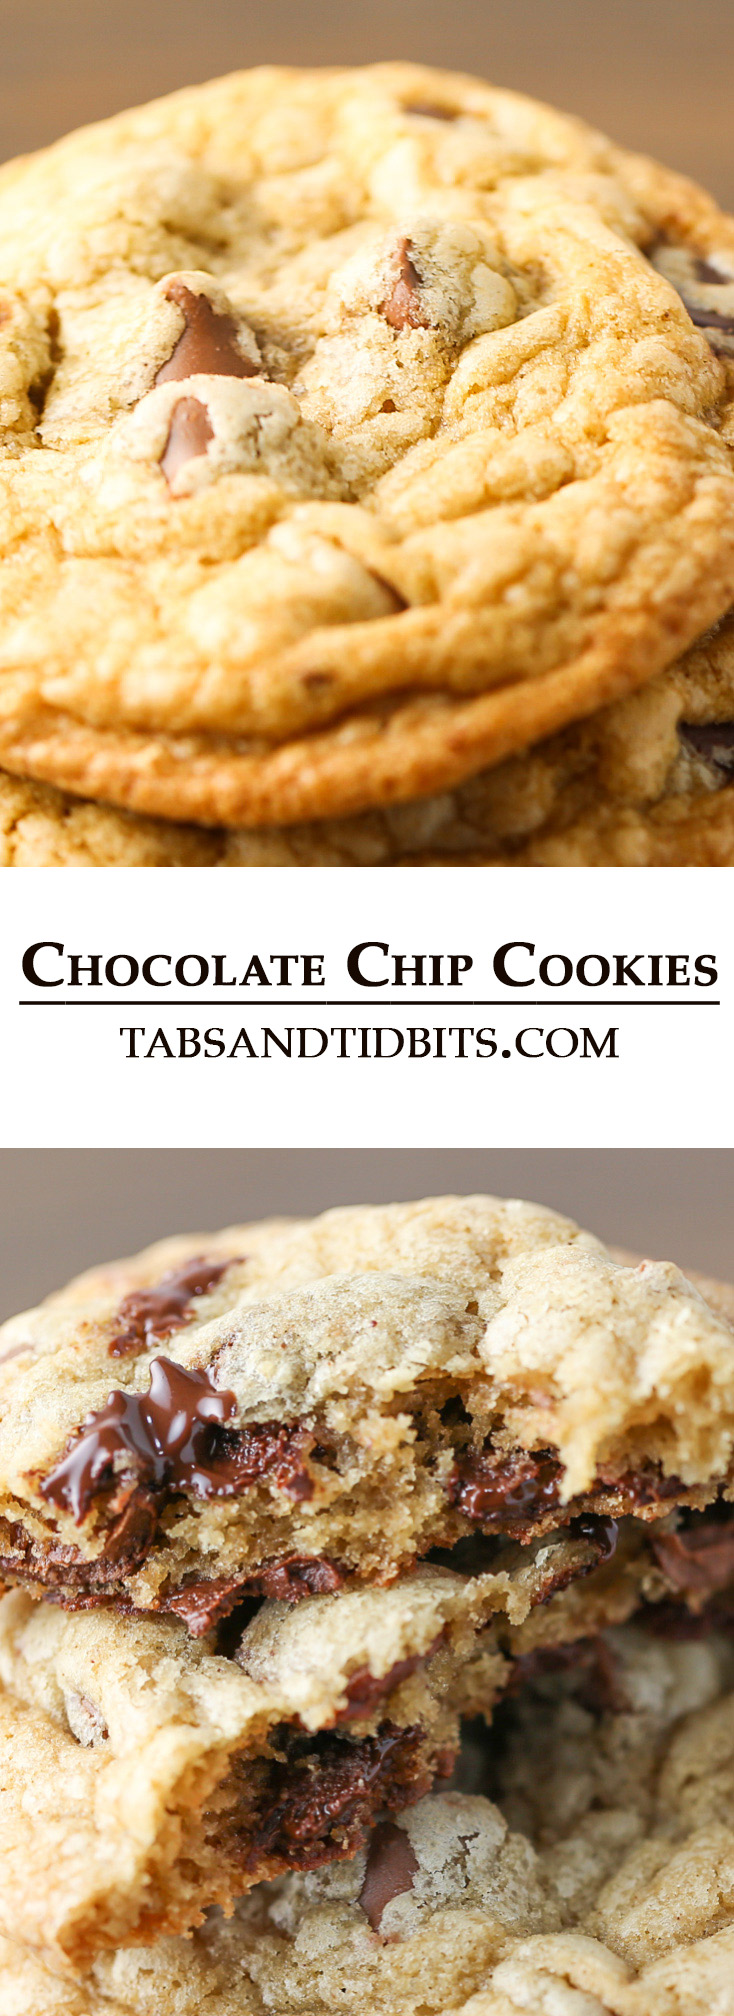 These Chocolate Chip Cookies deliver on the moist and chewy interior and buttery crisp edges and loaded with rich chocolate!